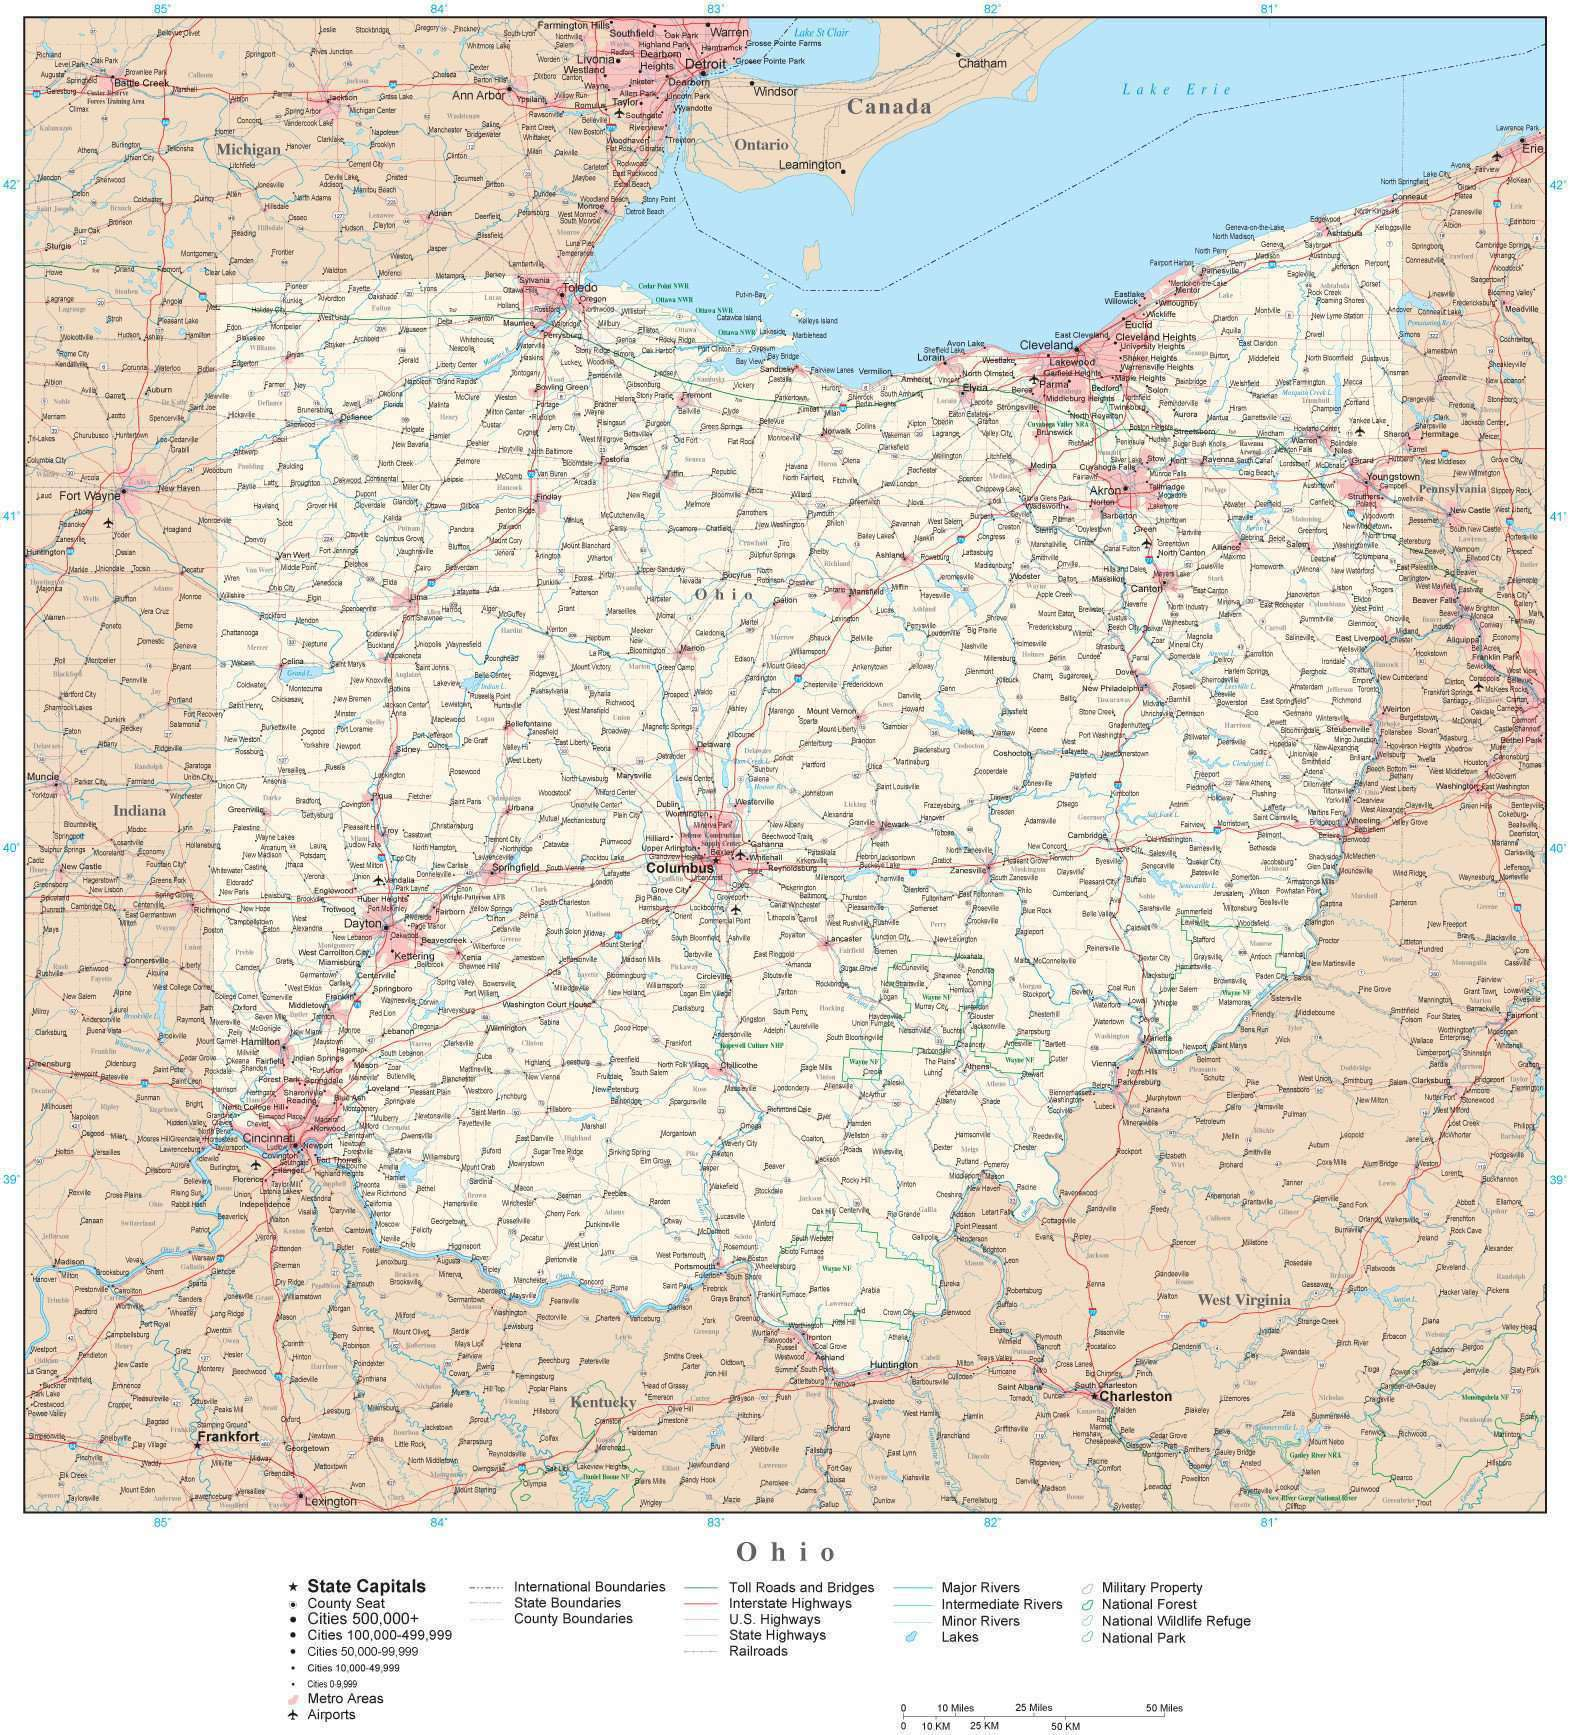 Detailed Ohio Digital Map with County Boundaries, Cities, Highways,  National Parks, and more